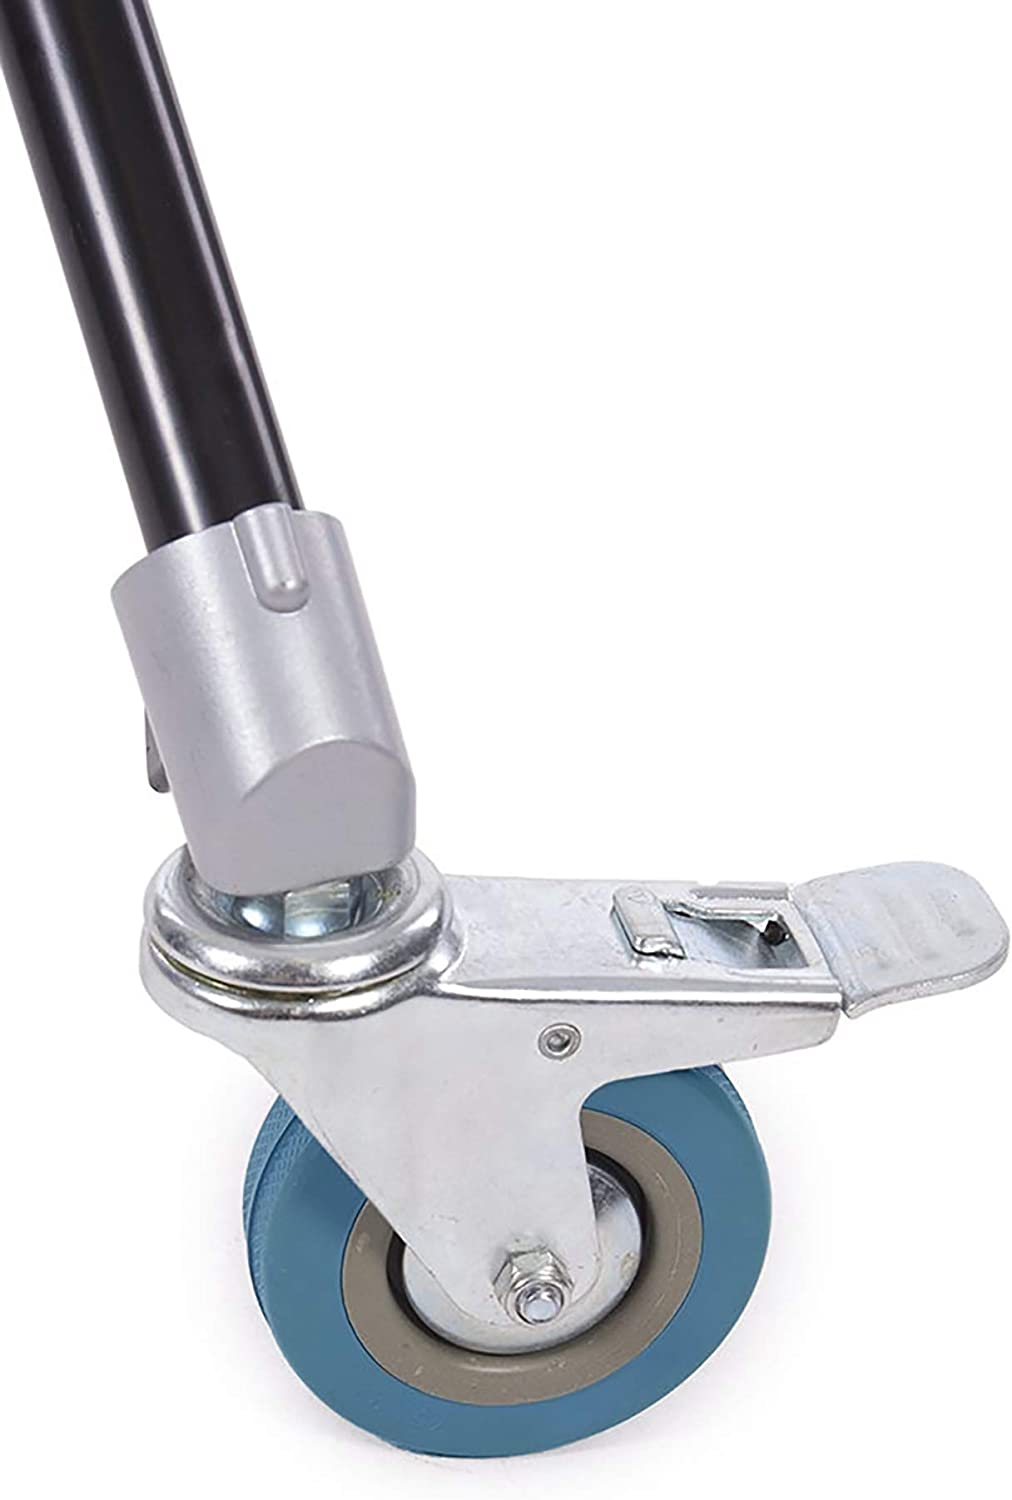 360 Swivel Easy-Glide Rubber Wheels Steel Construction 1x Photography /& Video Light Stand Caster Wheels - Pack of 3 Fovitec Step-On Locks